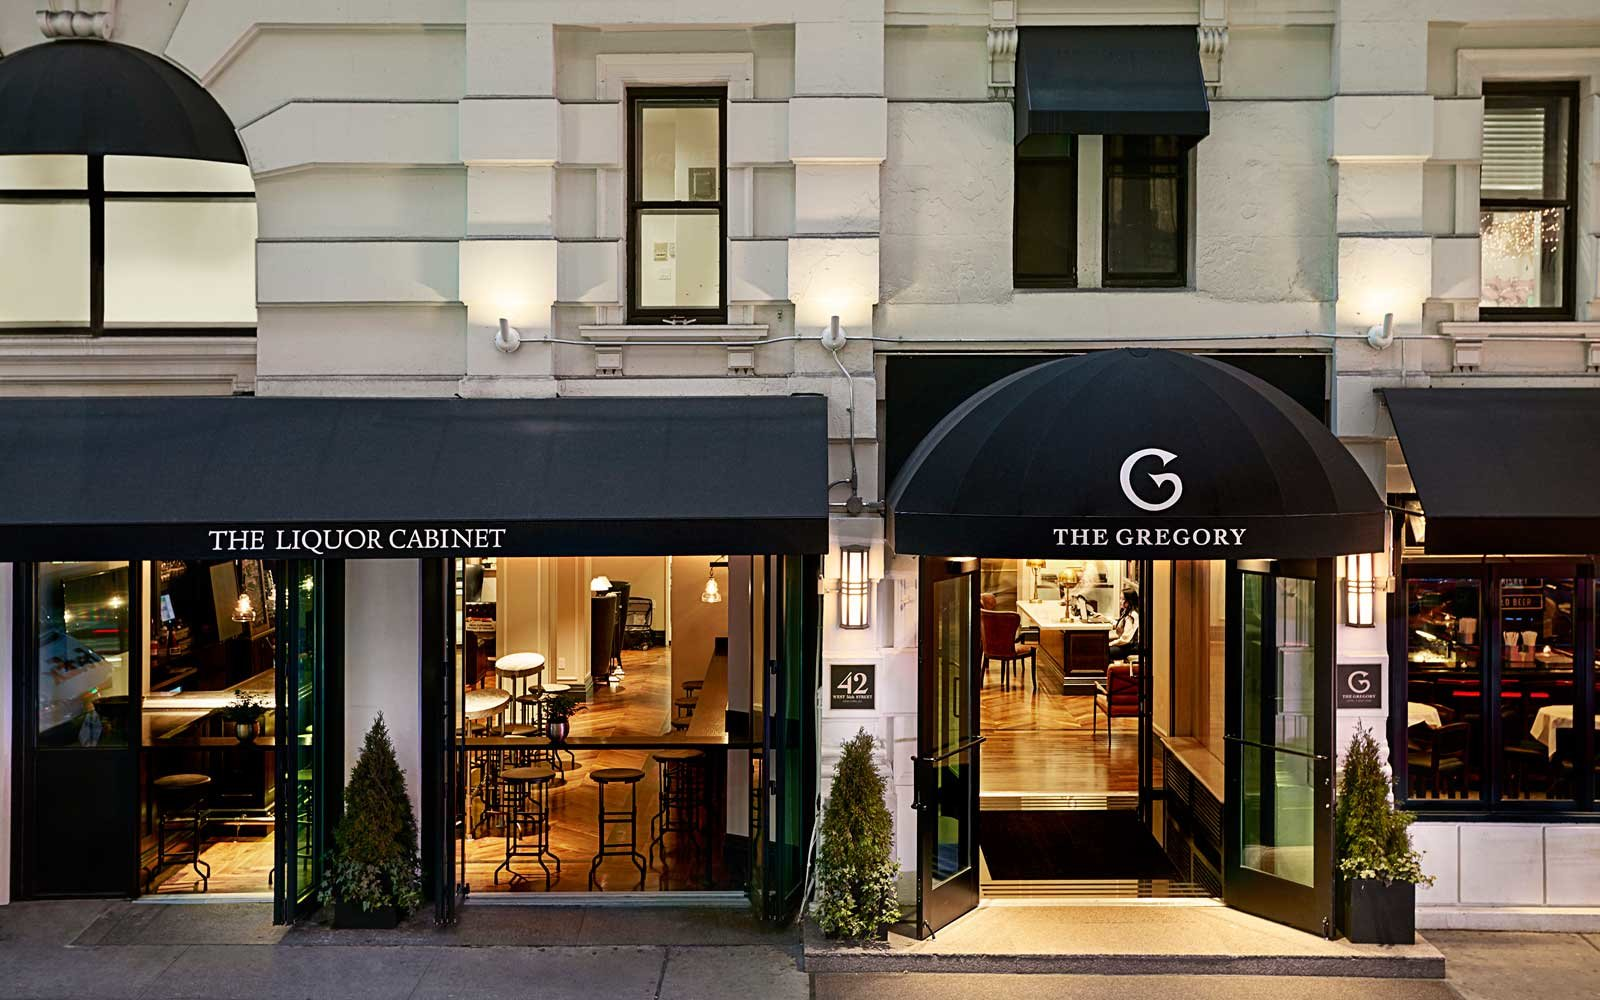 The exterior of the Gregory Hotel New York